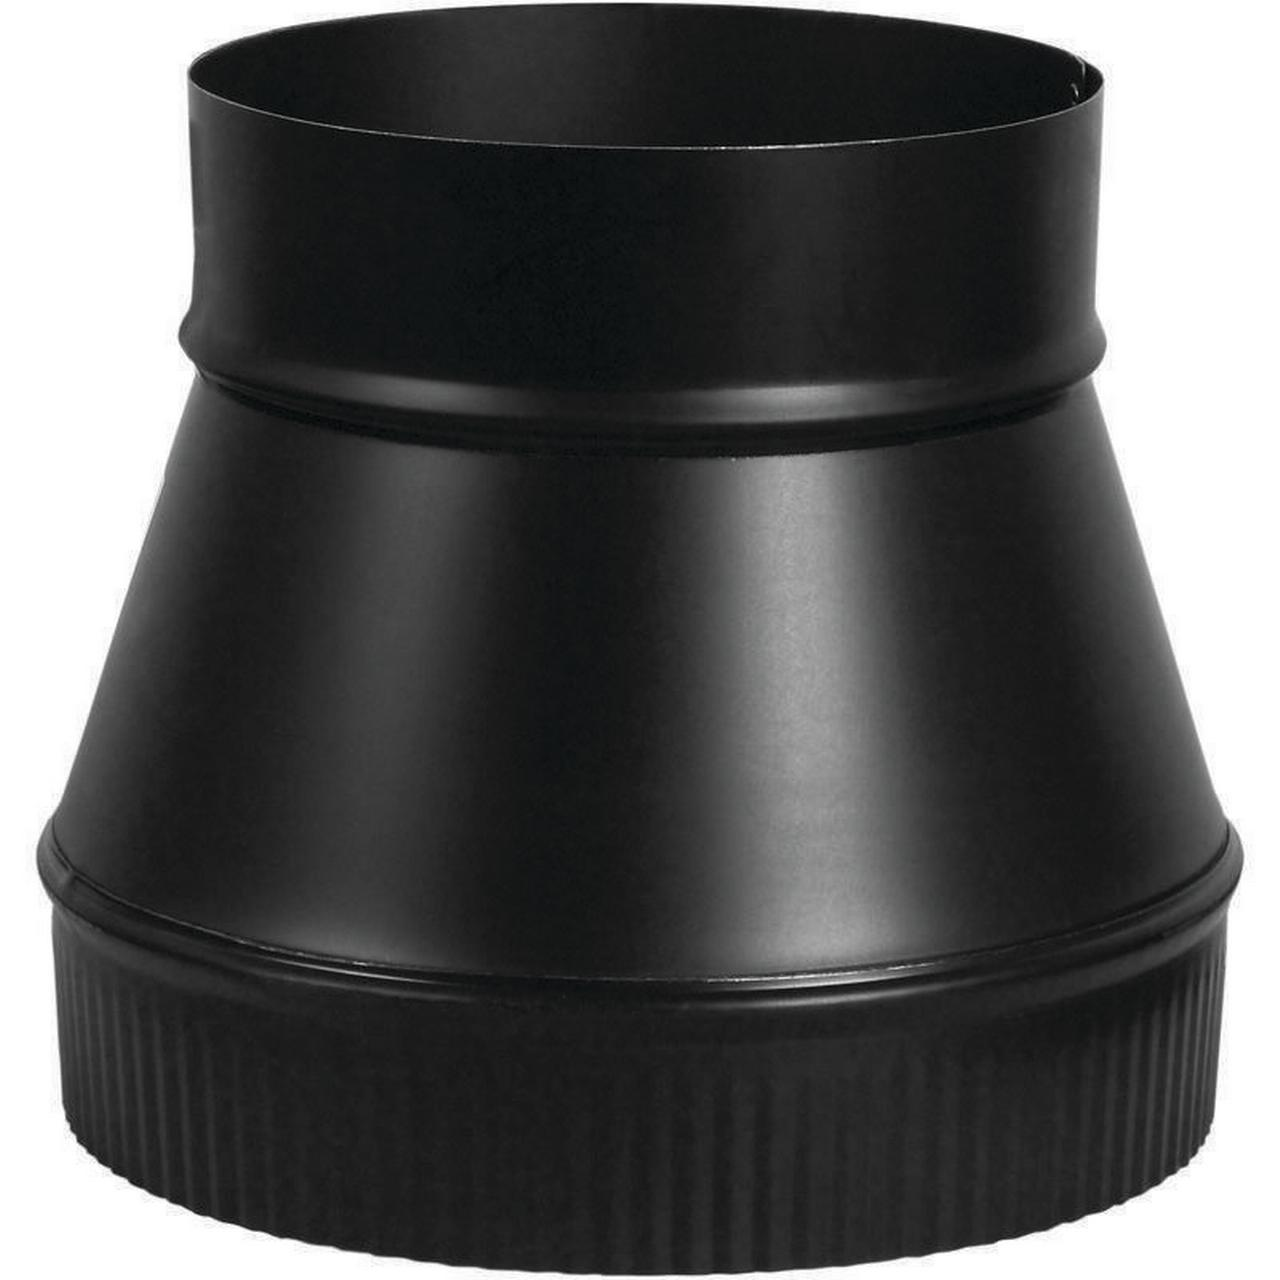 Imperial BM0059 1-Piece Flue Pipe Increaser, 5 x 6 in, 24 ga, Black